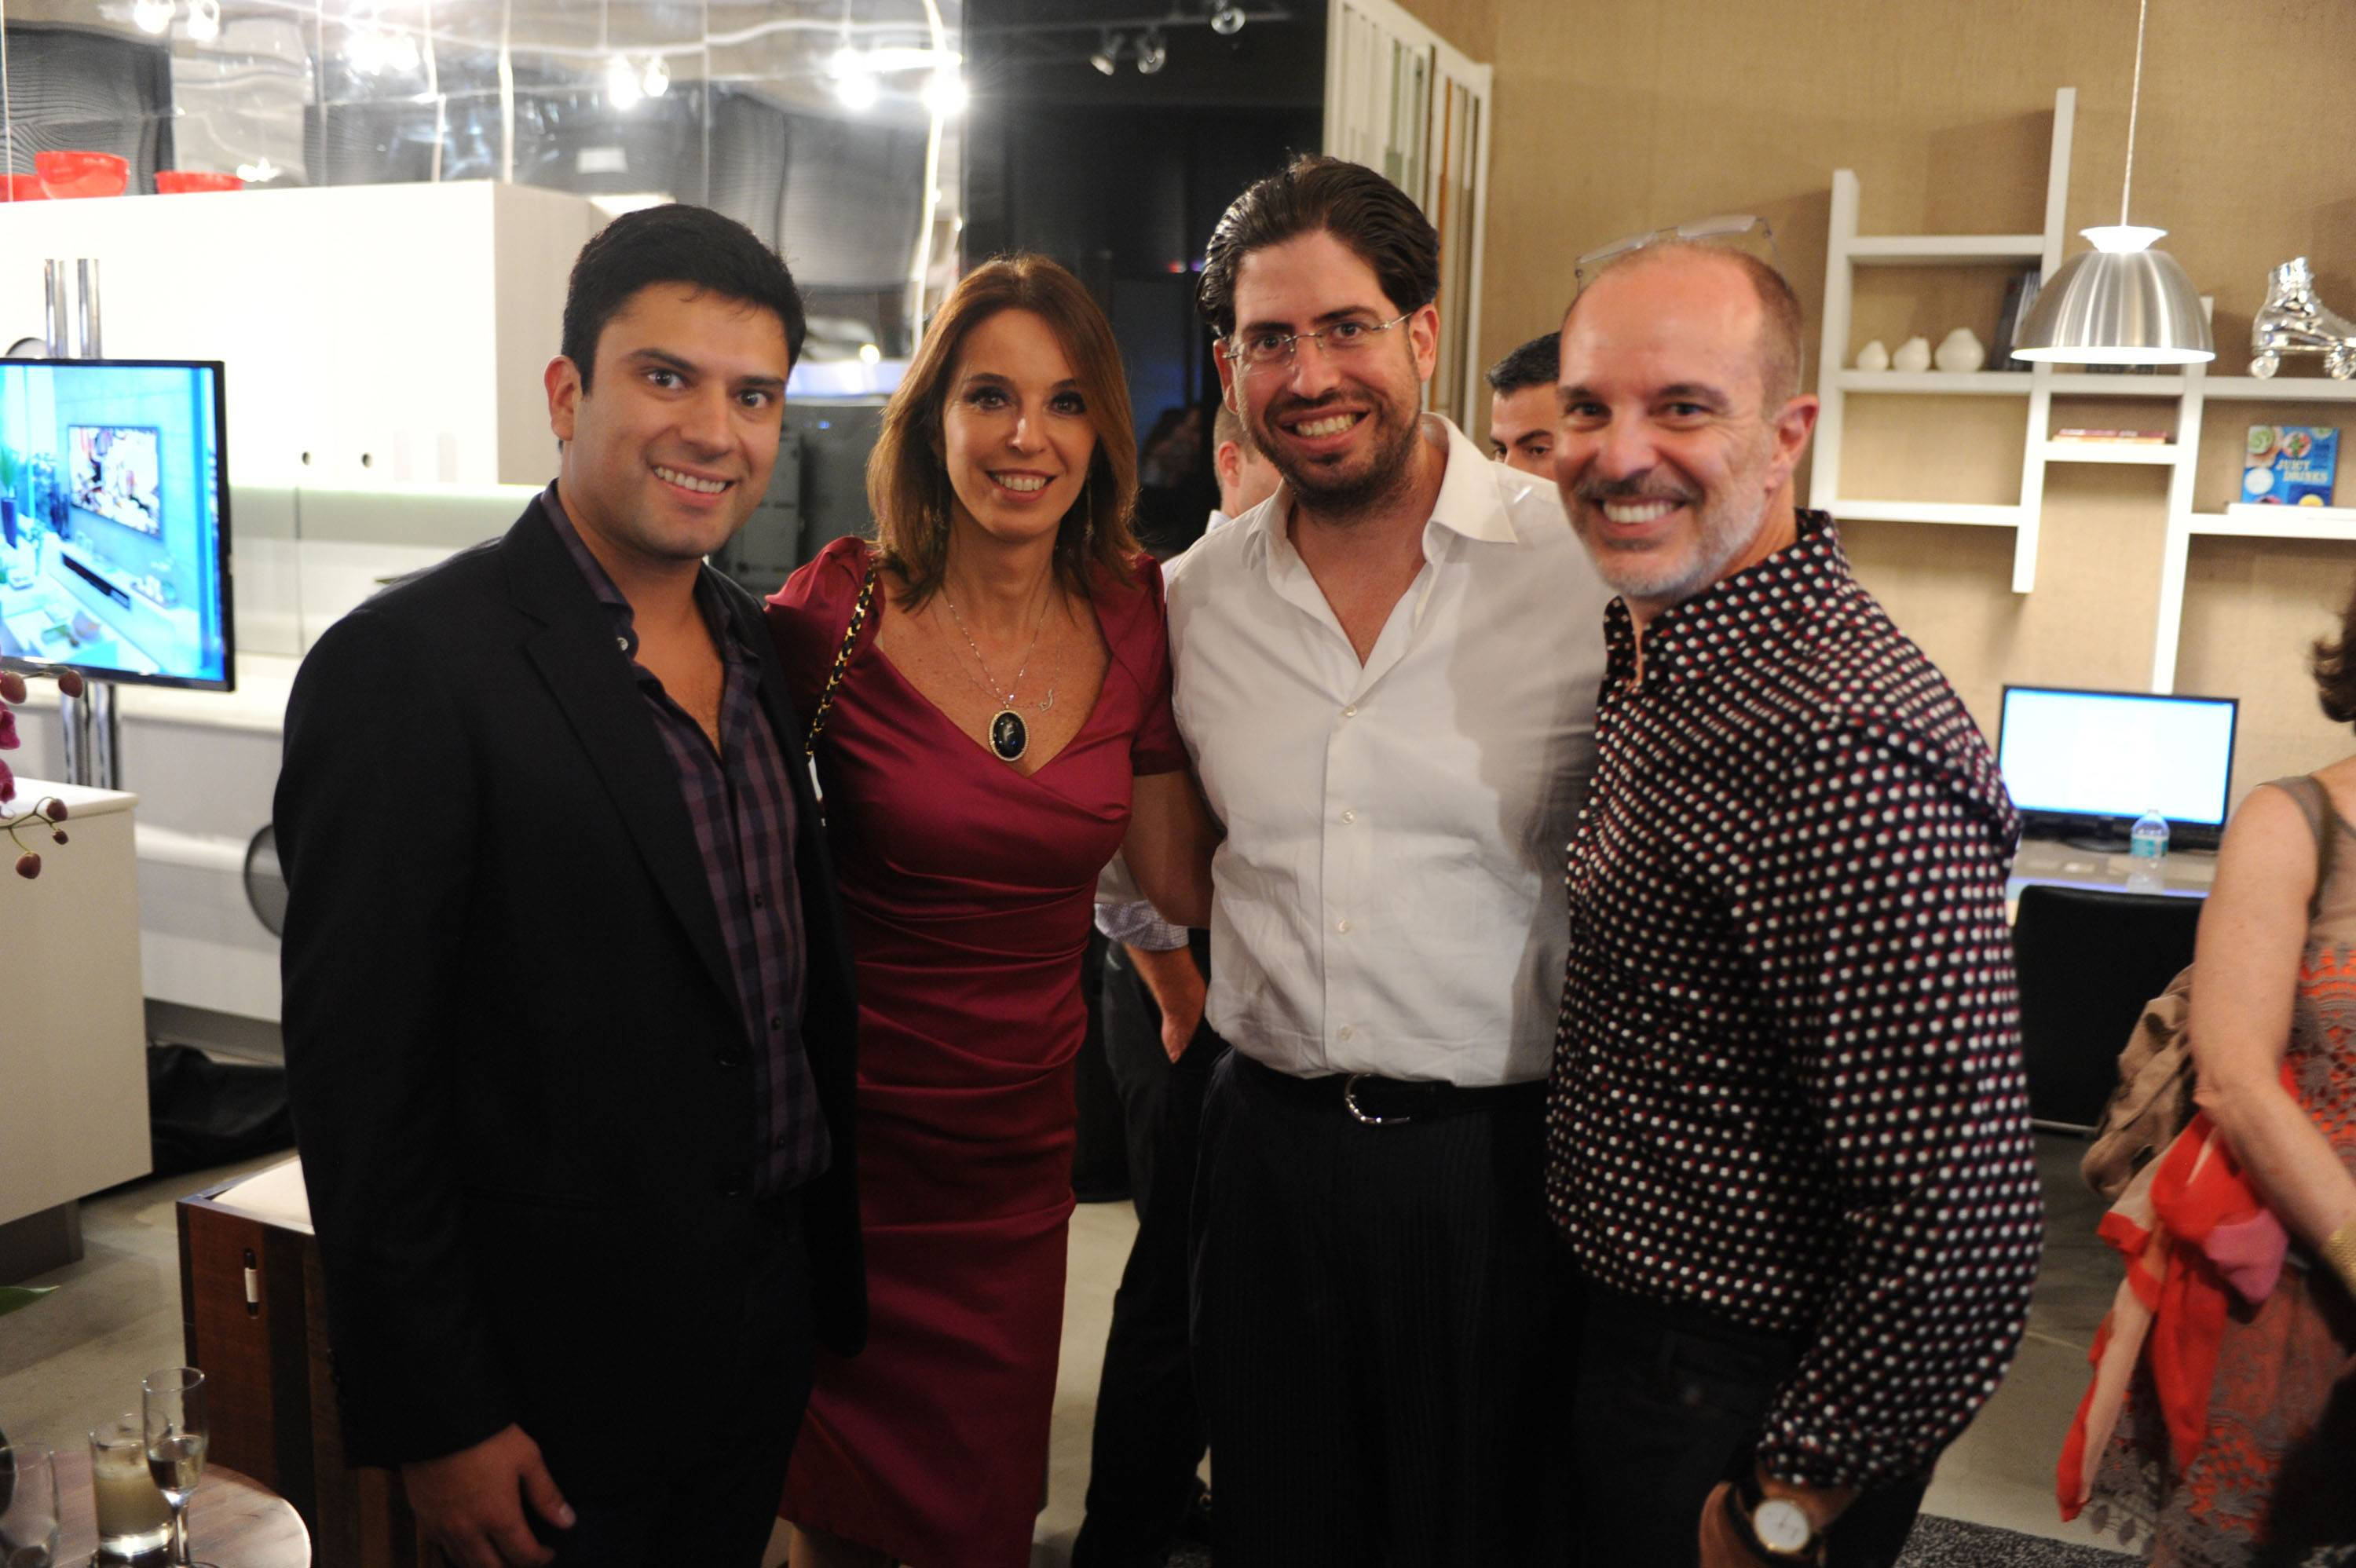 Claudio Faria, Esther Schattan, David Martin, & Renee Gonzalez1